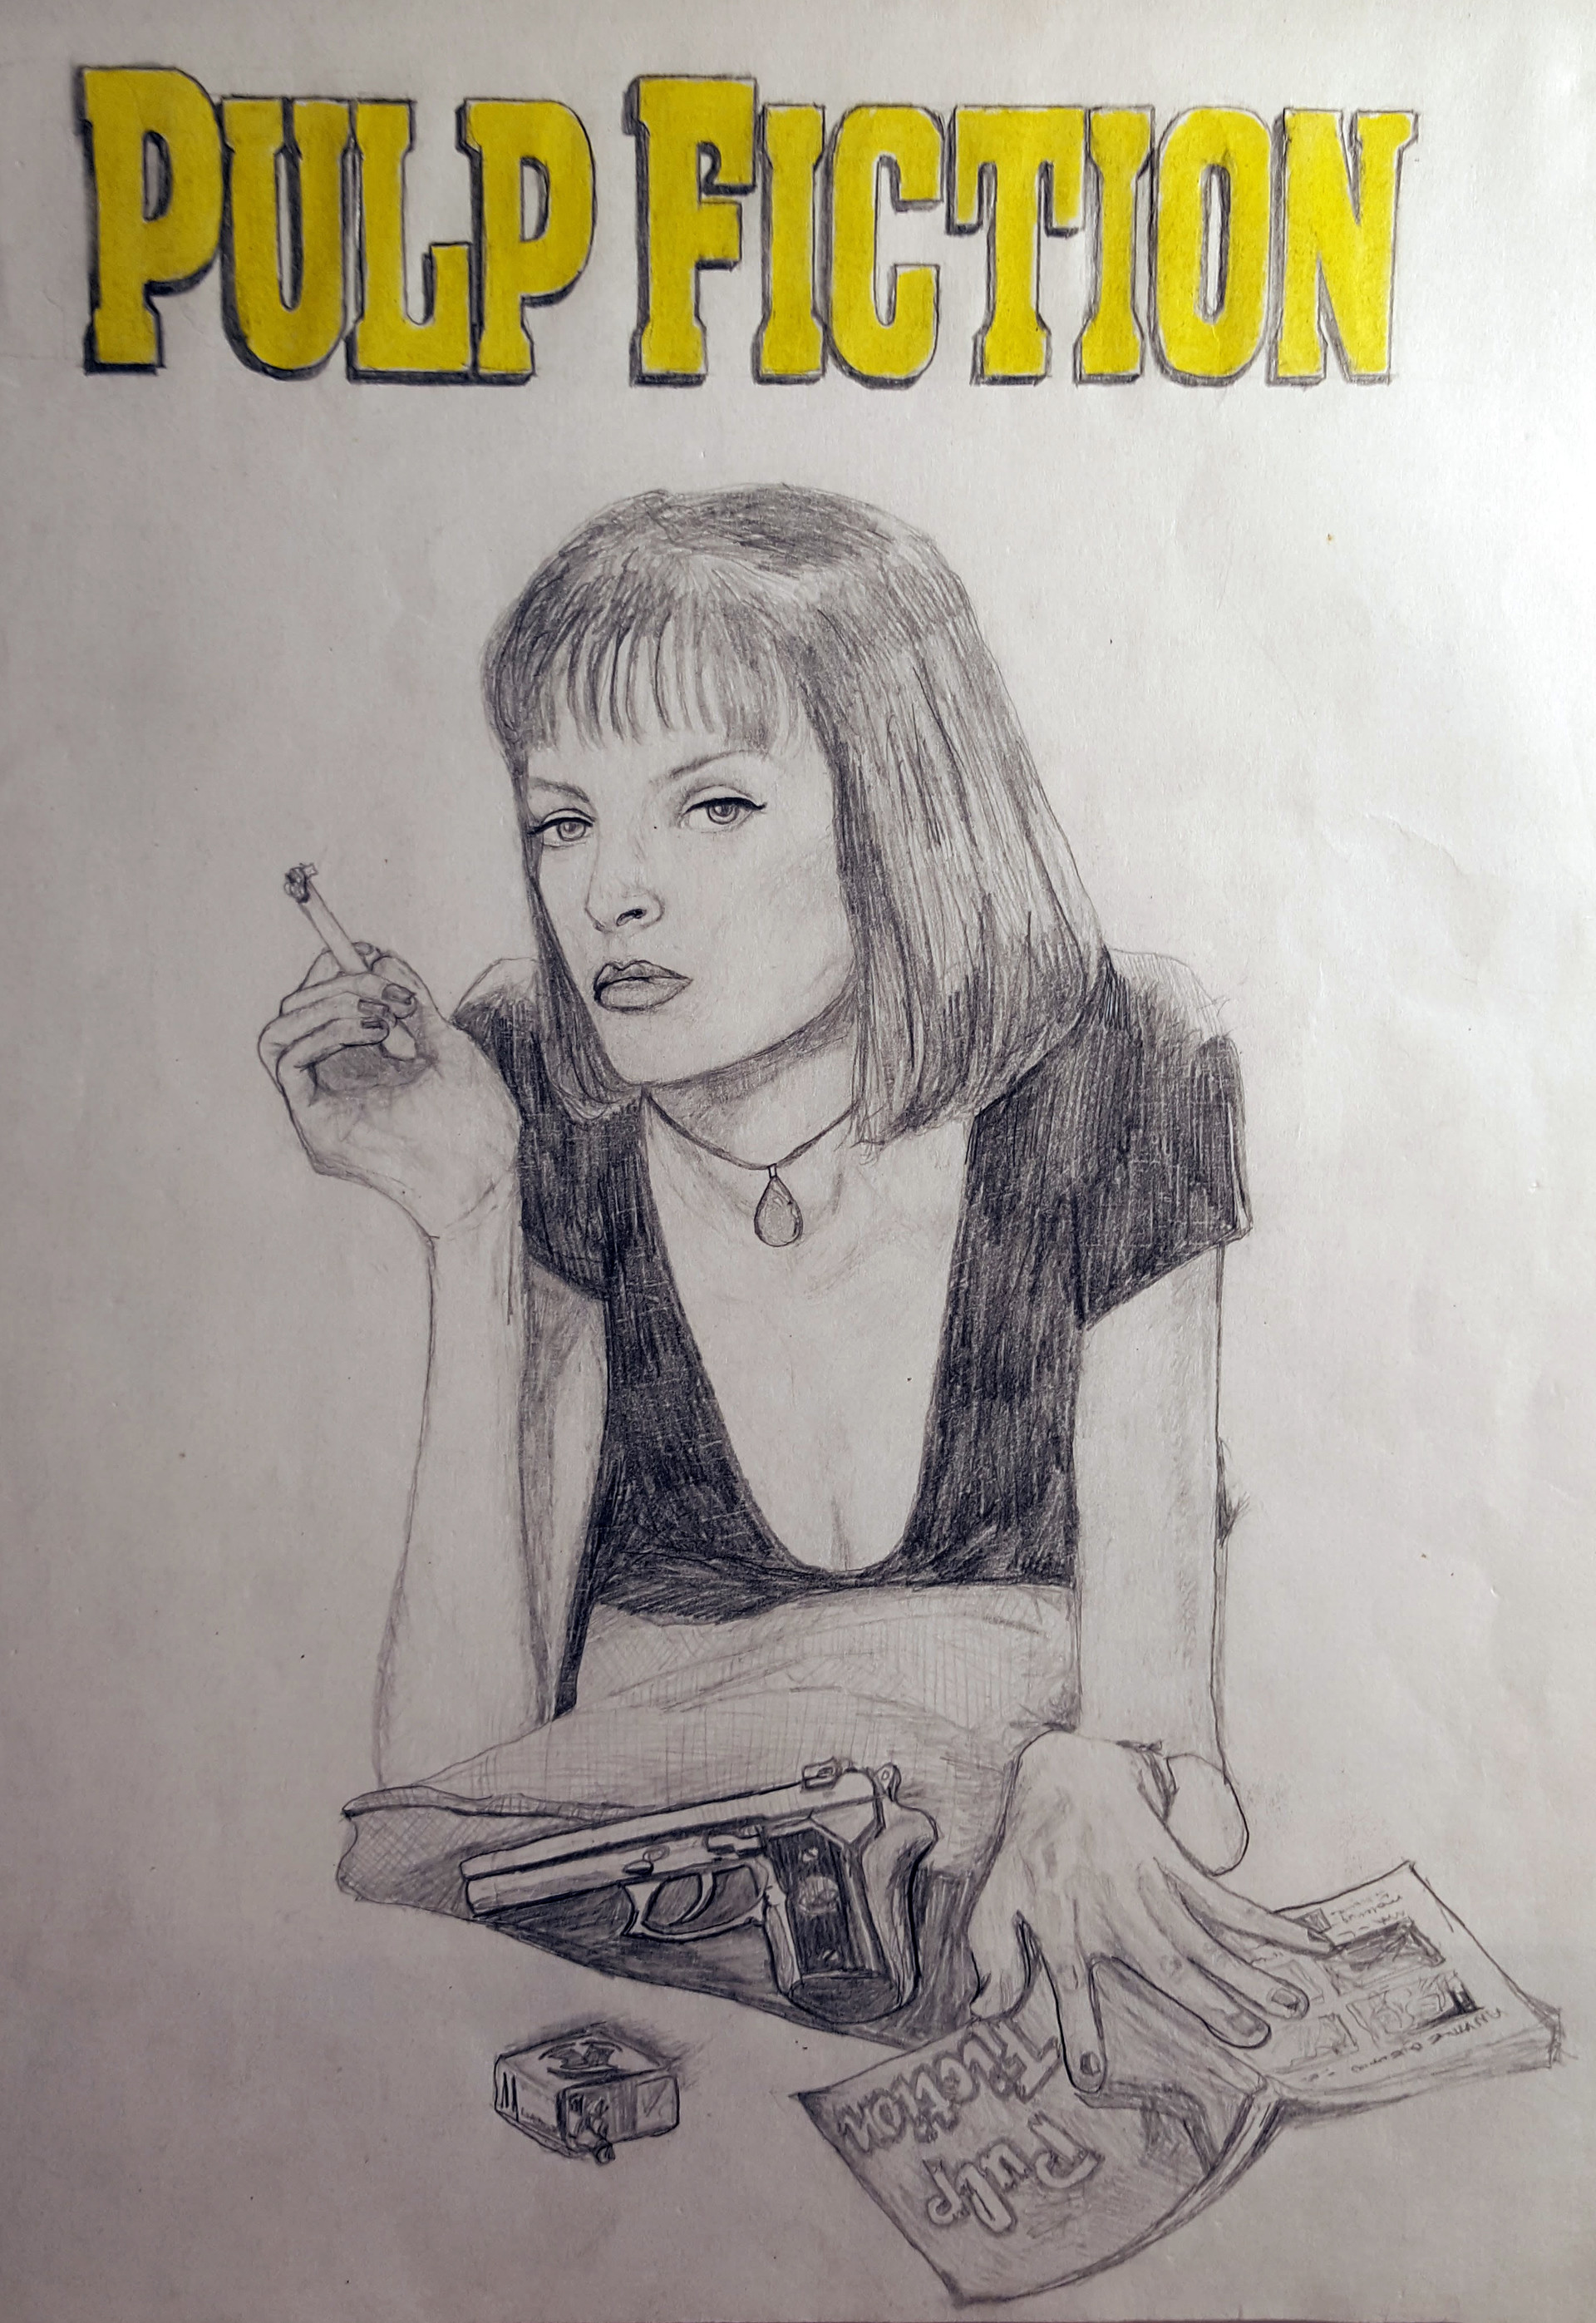 Benni amato pulp fiction poster